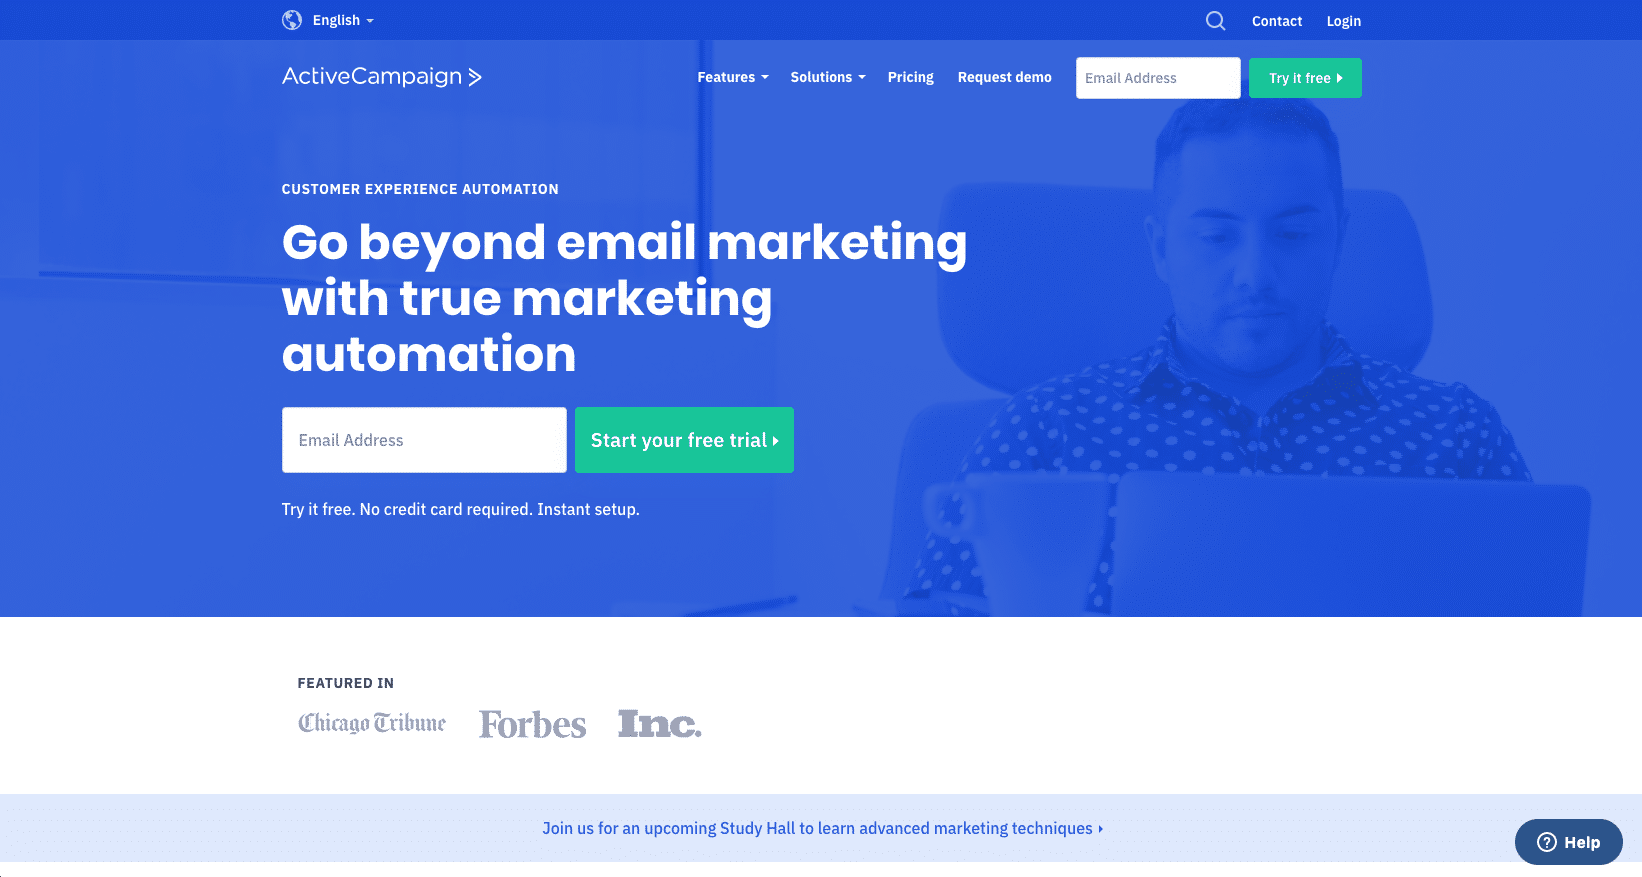 ActiveCampaign is an Integrated email marketing tool